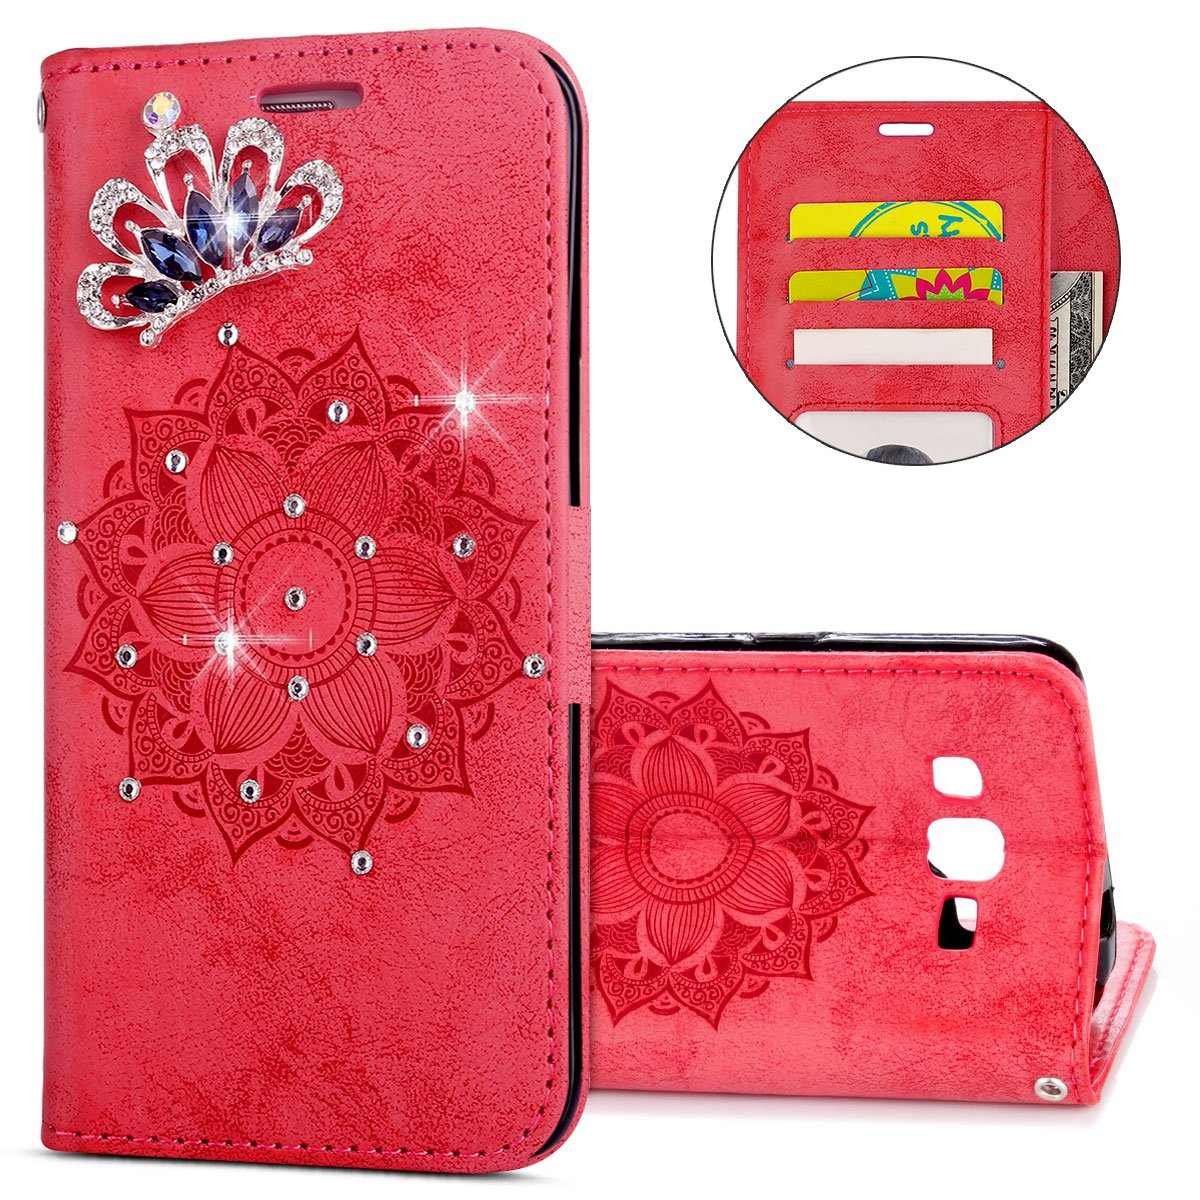 IKASEFU Galaxy G360 Case,3D Clear Crown Rhinestone Diamond Bling Glitter Wallet with Card Holder Emboss Mandala Floral Pu Leather Magnetic Flip Case Protective Cover for Samsung Galaxy G360,Red